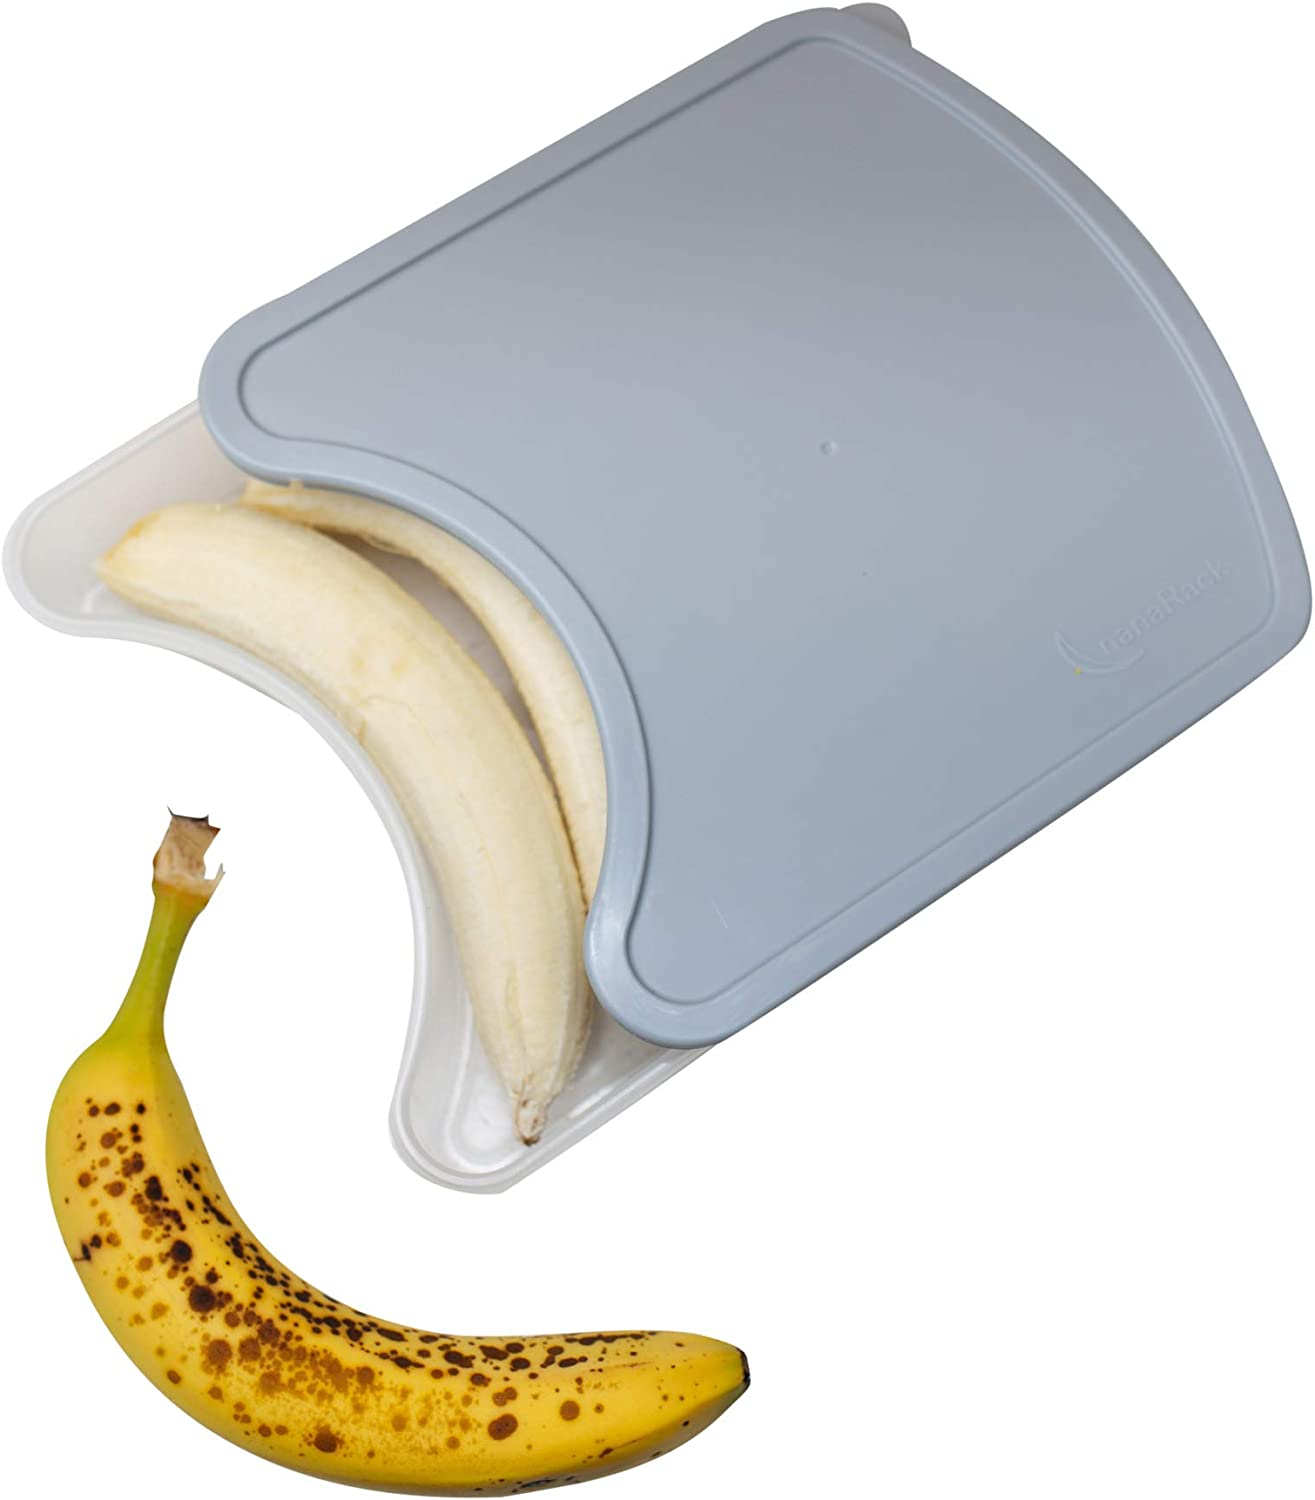 nanaRack Stacker - Frozen Banana Storage - Save Freezer Space - Save Money - Prevent Banana Ice Blocks - Frozen Food/Fruit/Banana Freezer Container